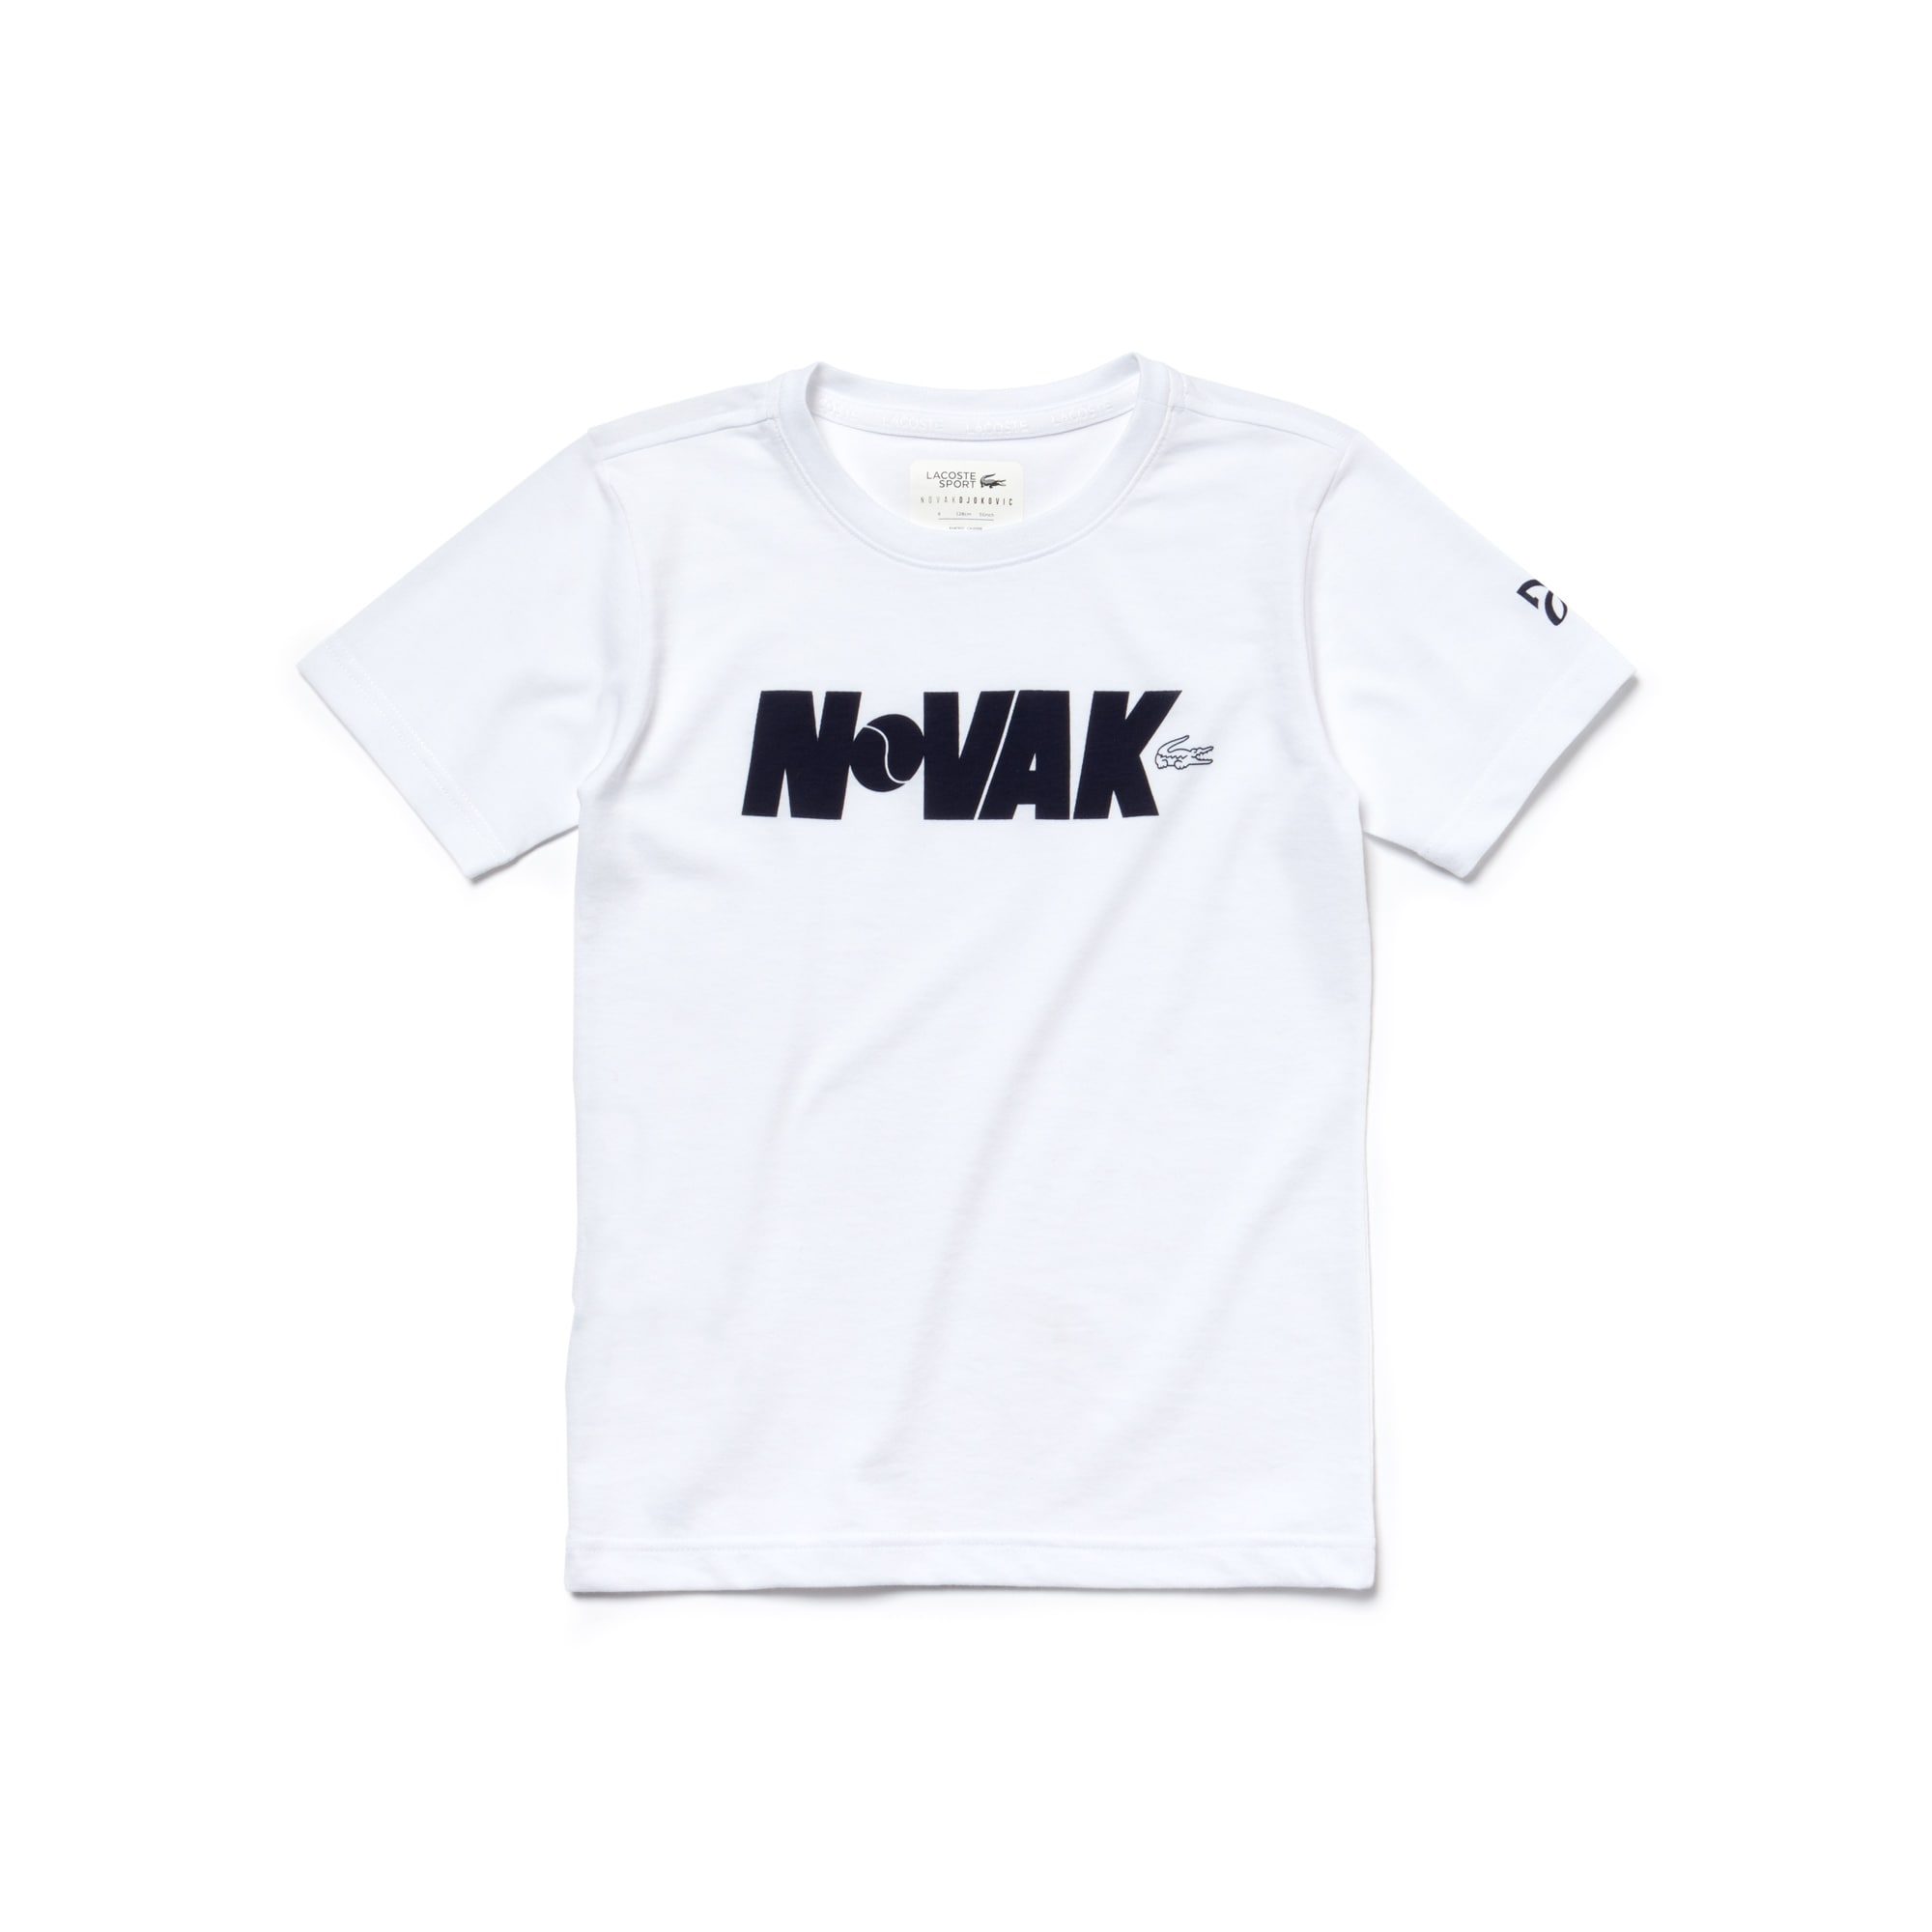 Camiseta Niño Lacoste Sport Collection Novak Djokovic Support With Style De Punto Liso Técnico